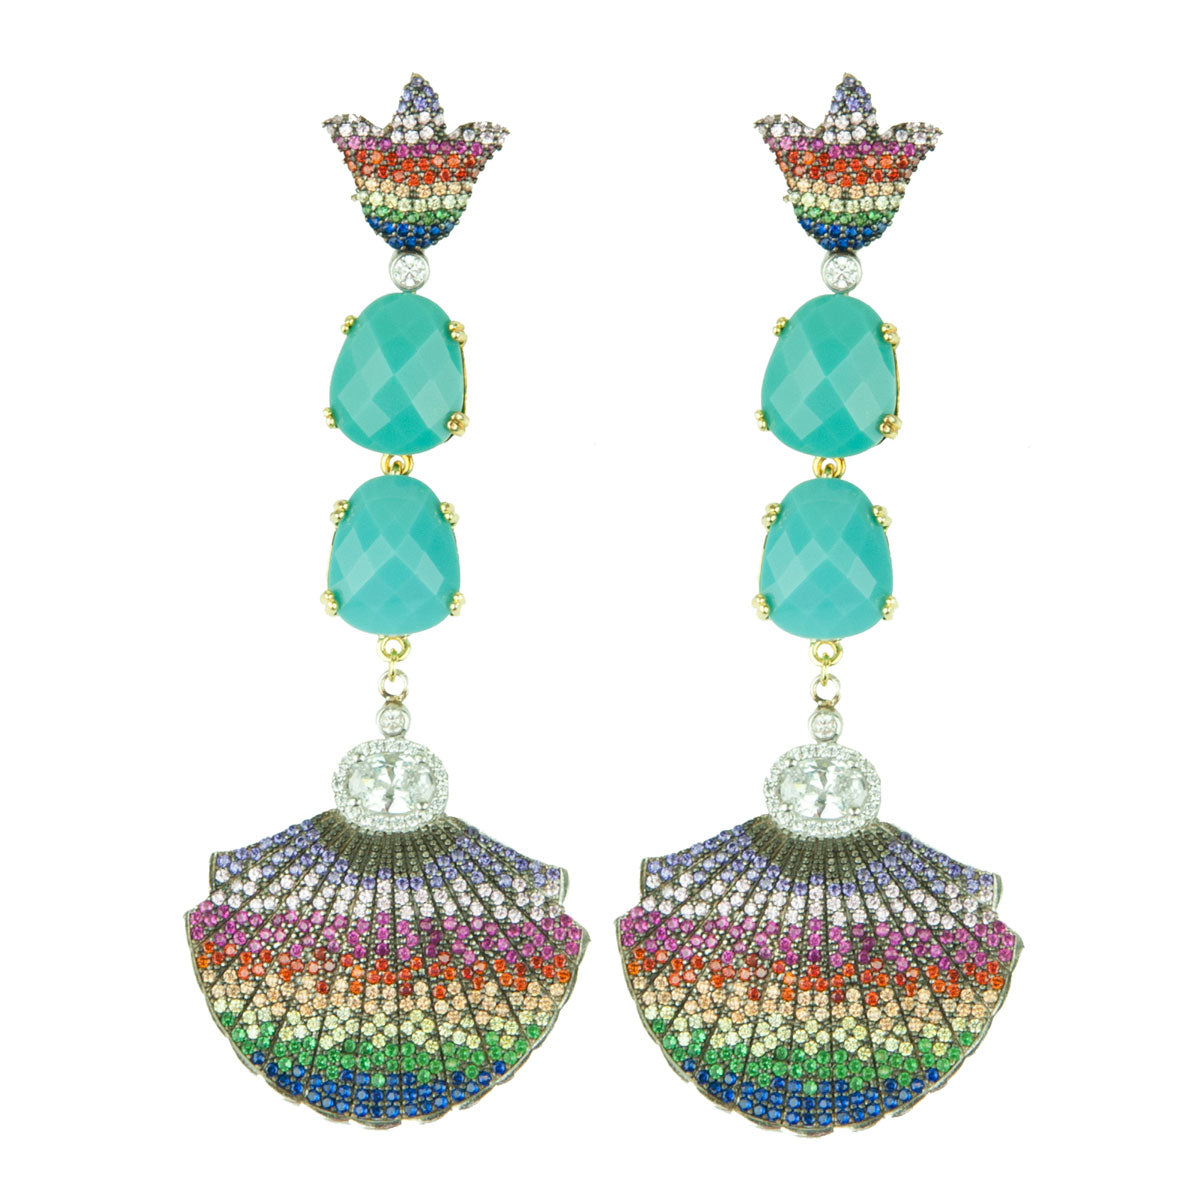 Ishtar Dangle Earrings with Turquoise and Multicolored Crystals